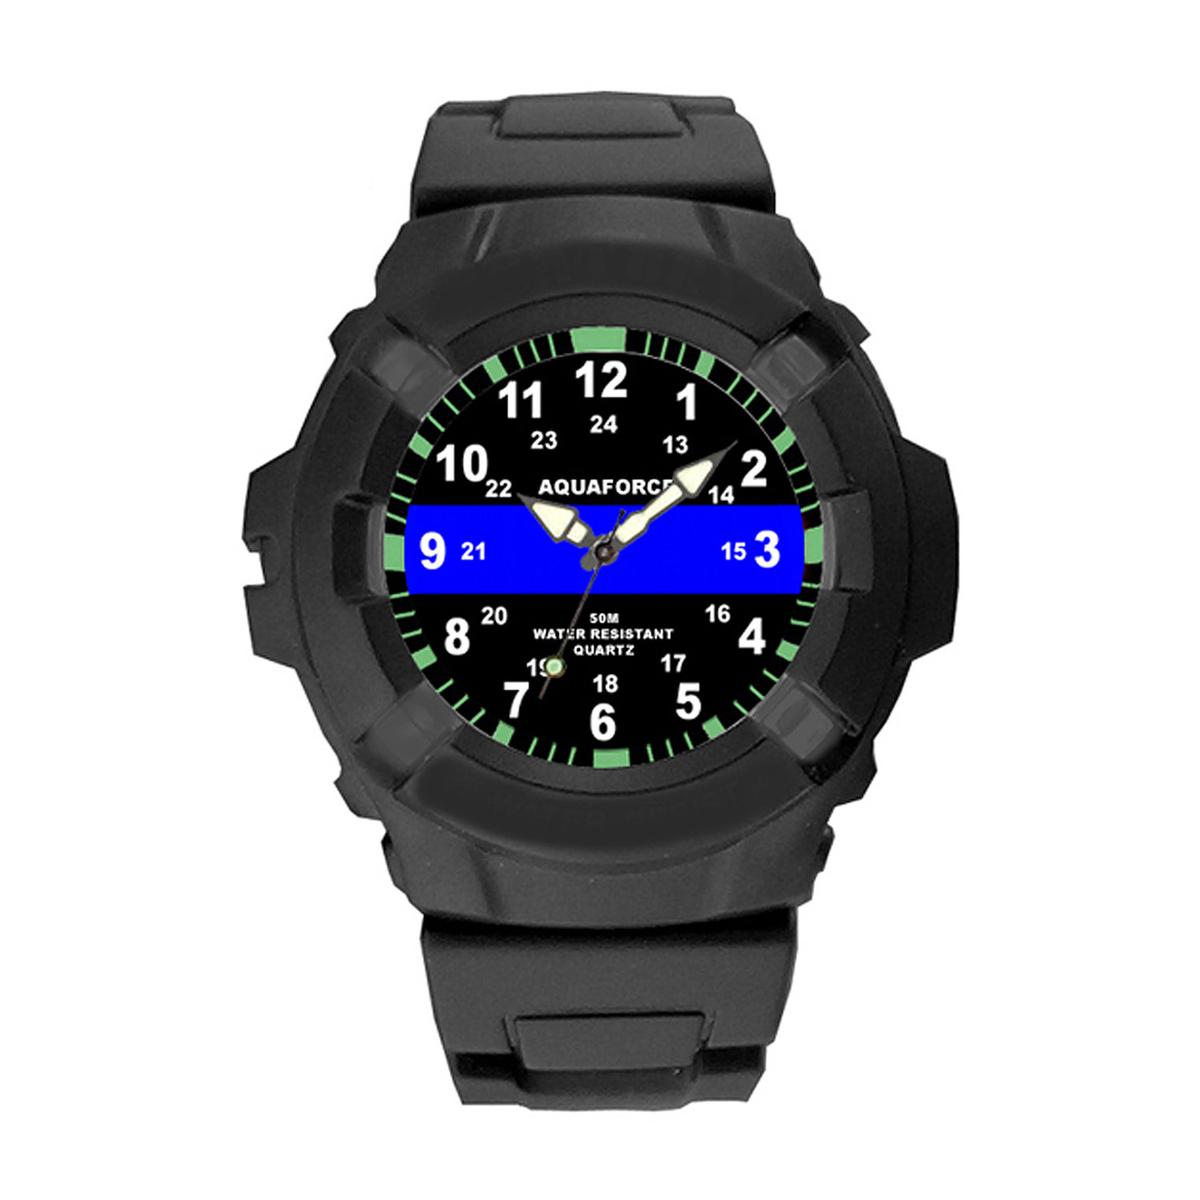 Aquaforce Thin Blue Line Watch, Police, Law Enforcement Support